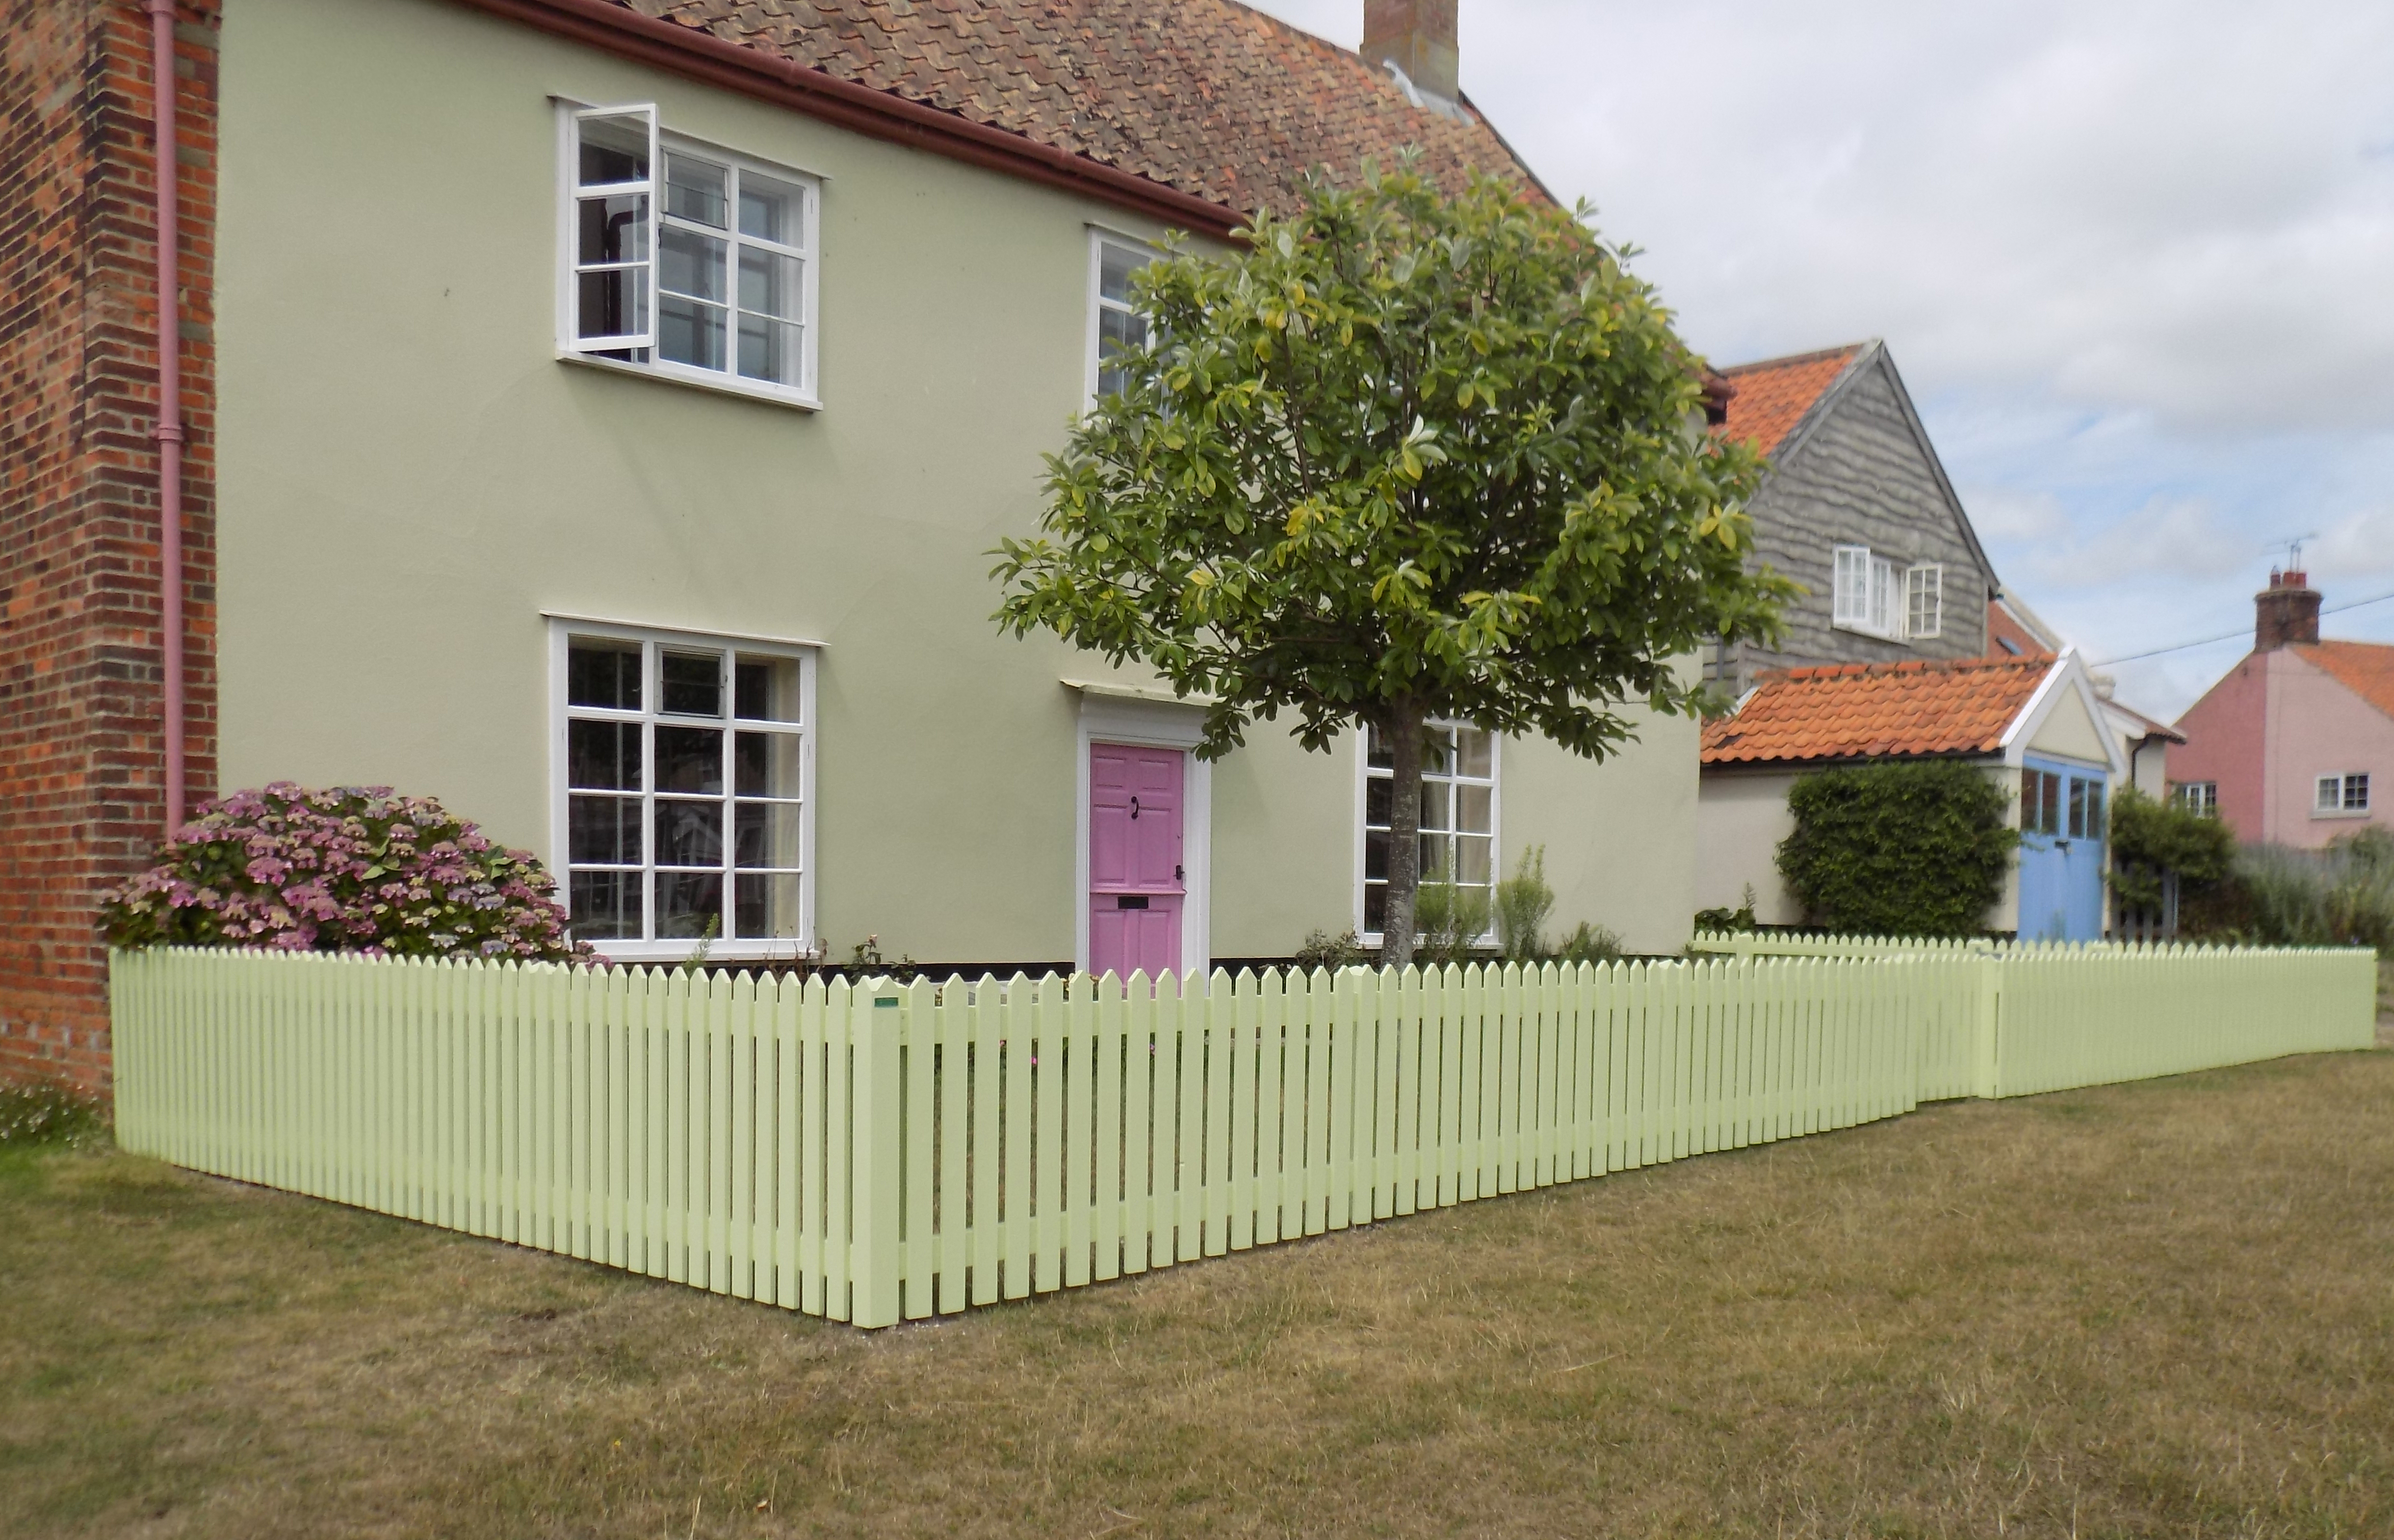 Picket fencing colour co-ordinated.